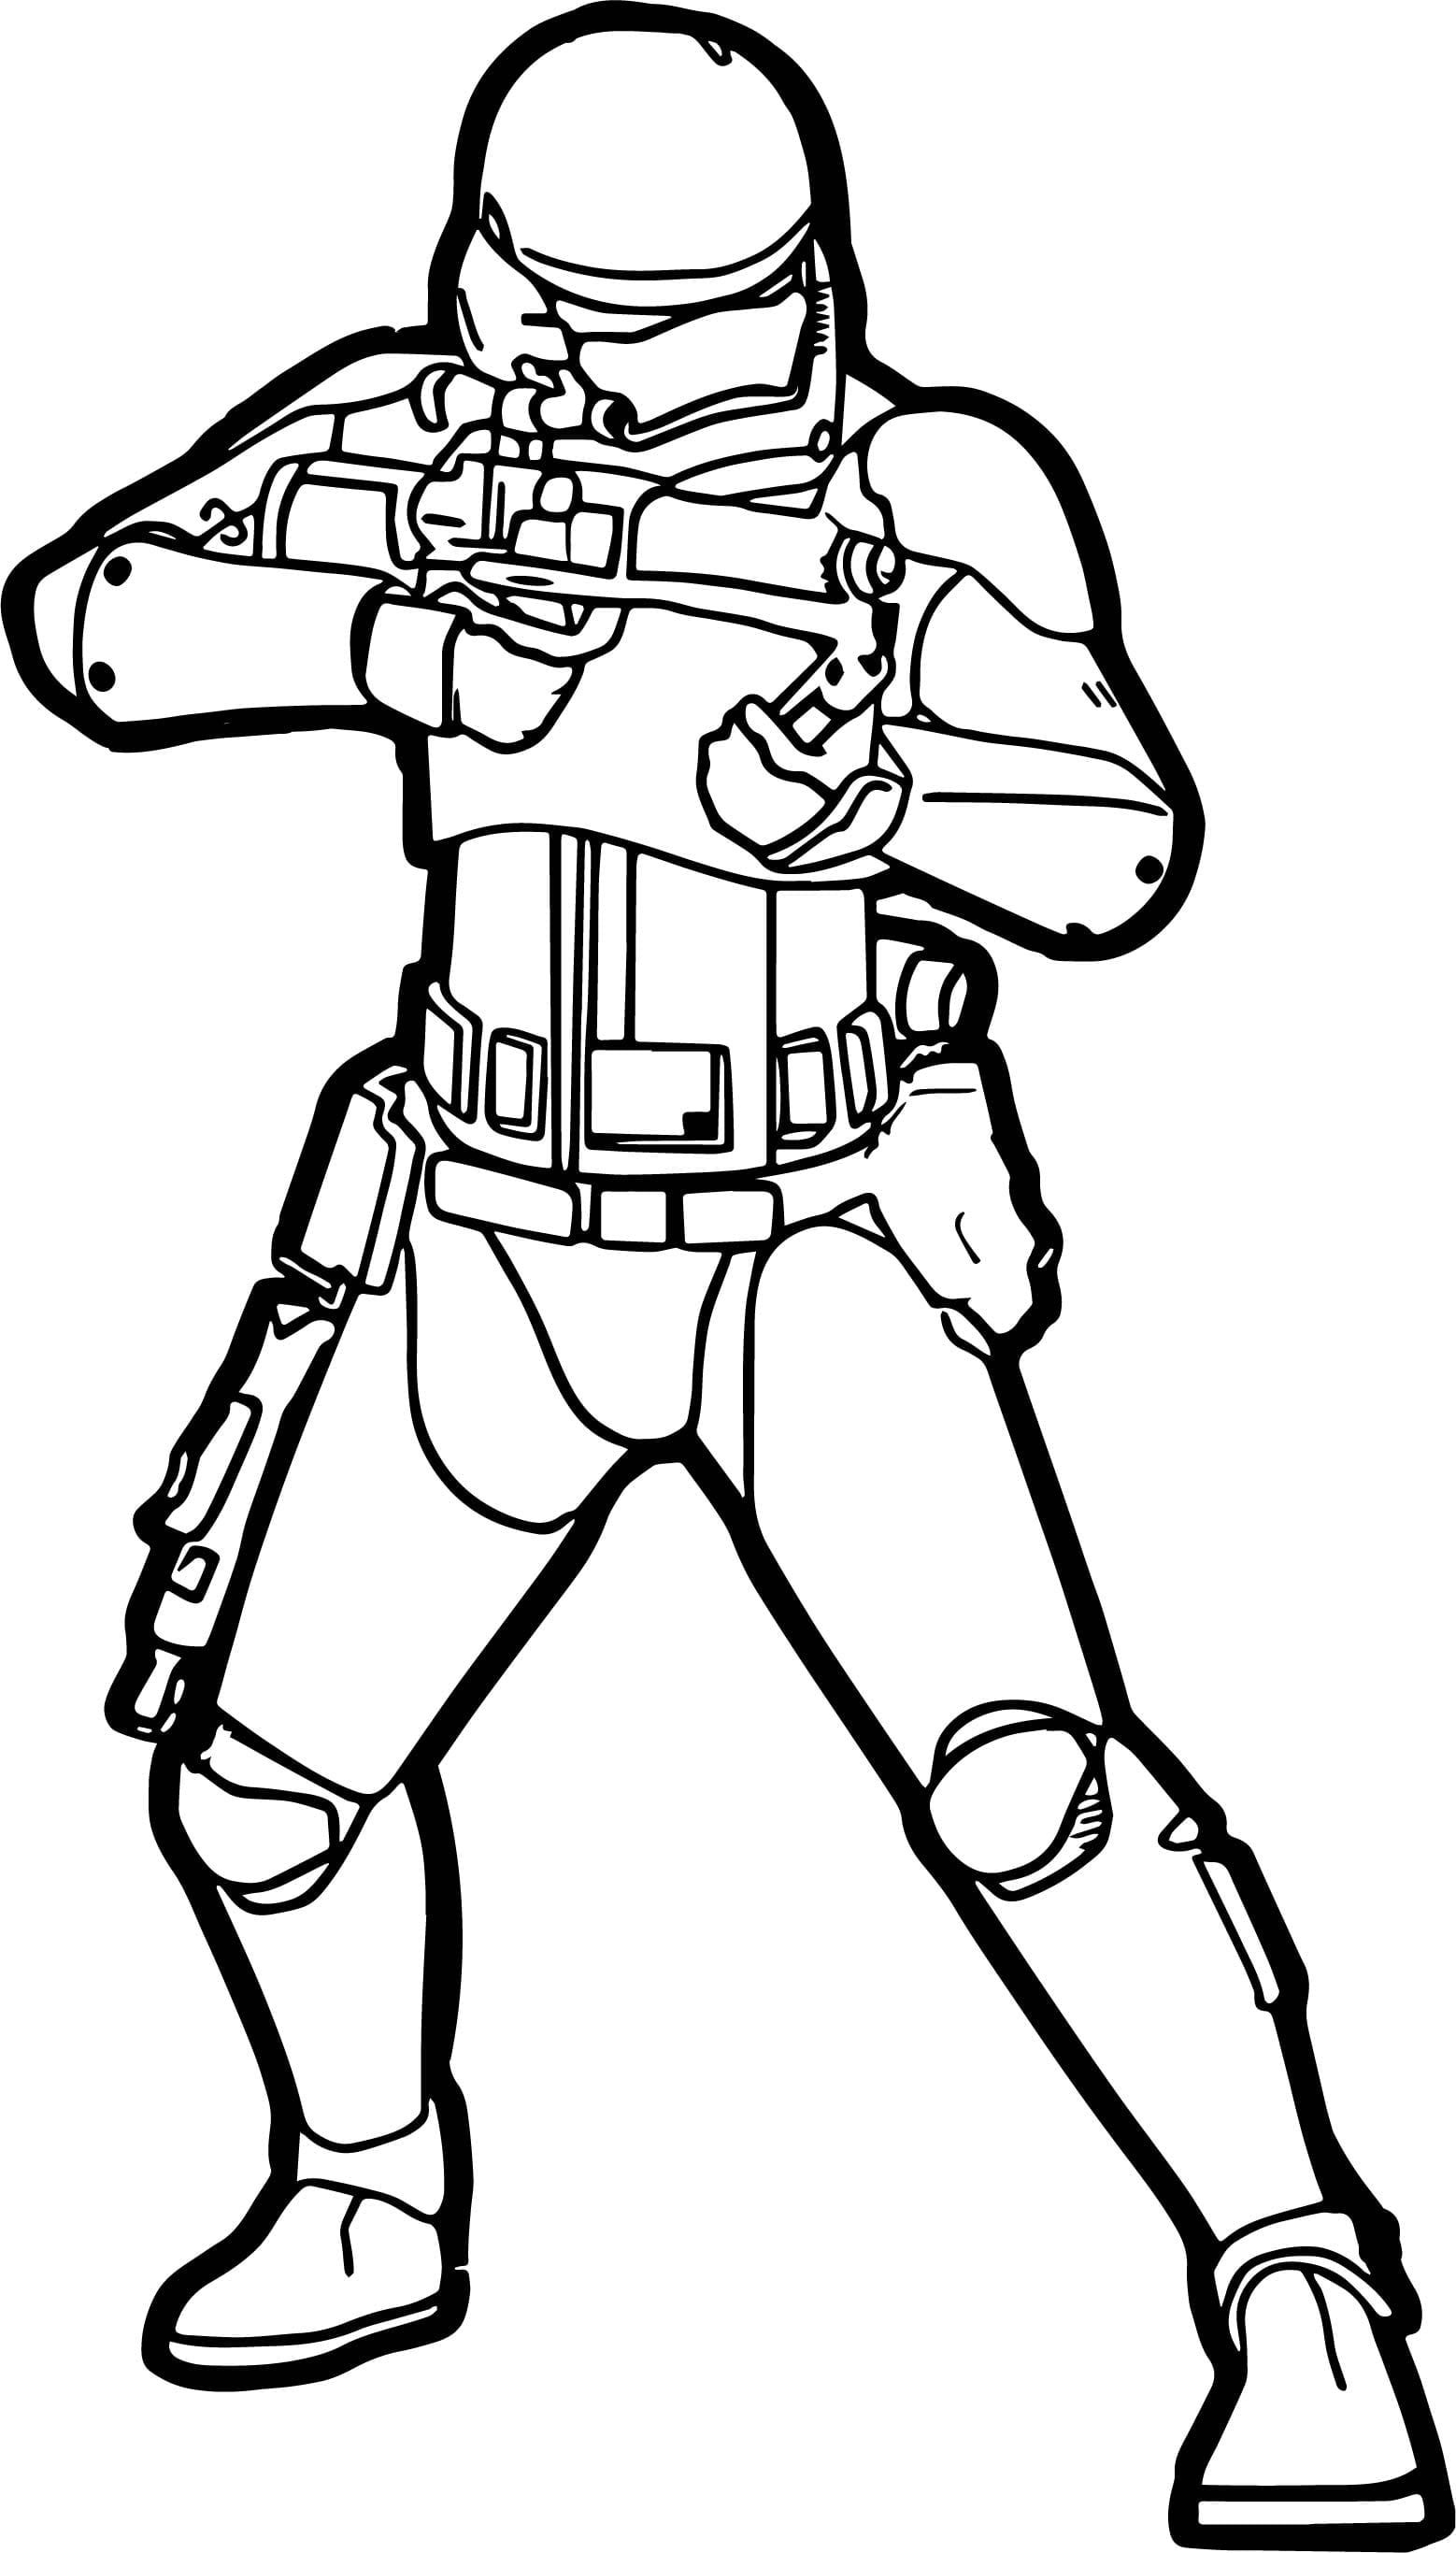 star wars coloring pages for kids famous star wars coloring darth vader cartoon coloring wars kids for pages coloring star